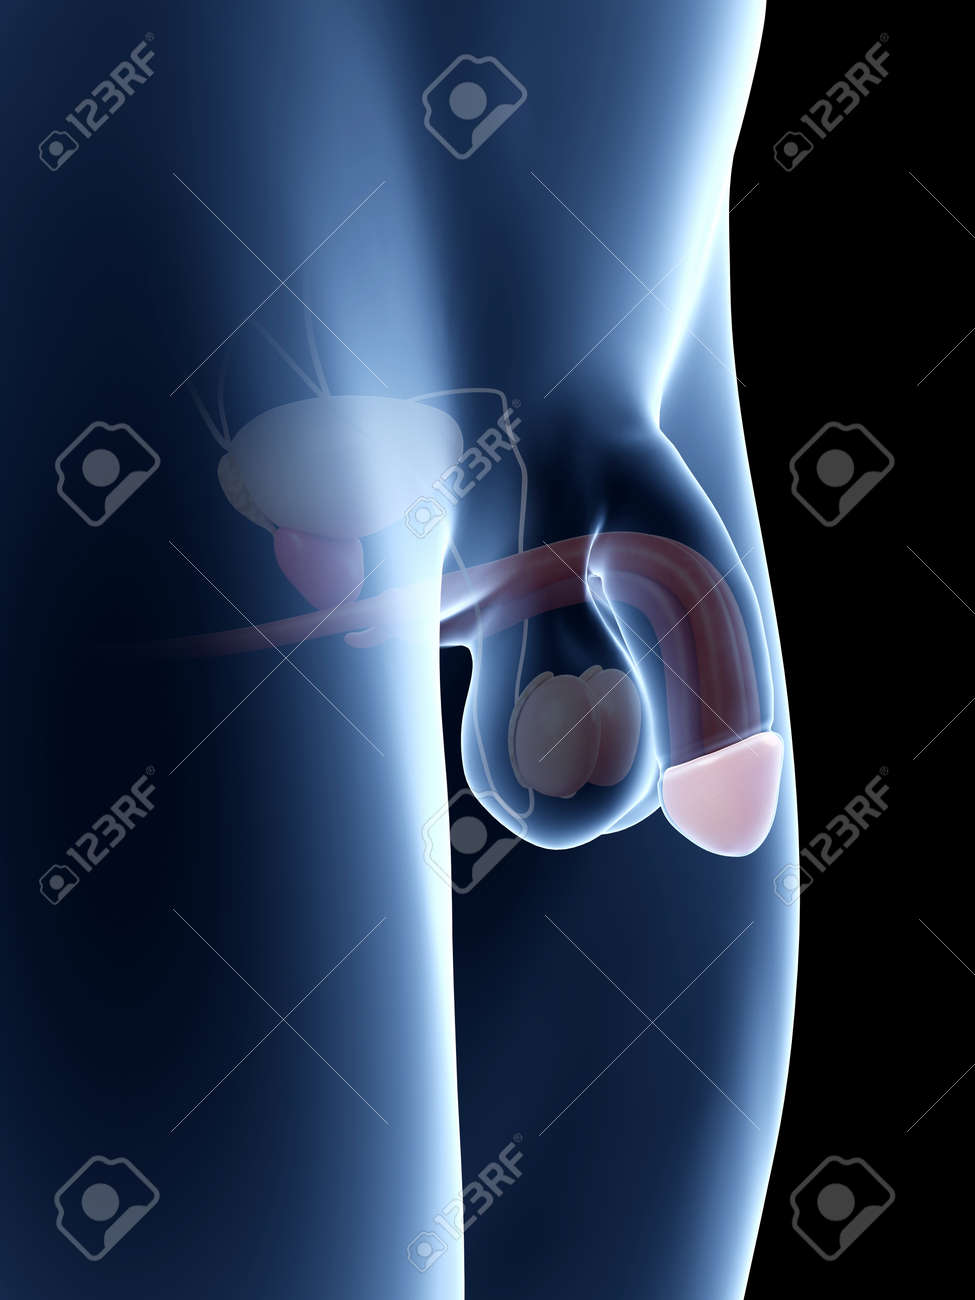 Anatomy Illustration Of The Penis - Glans Stock Photo, Picture And ...